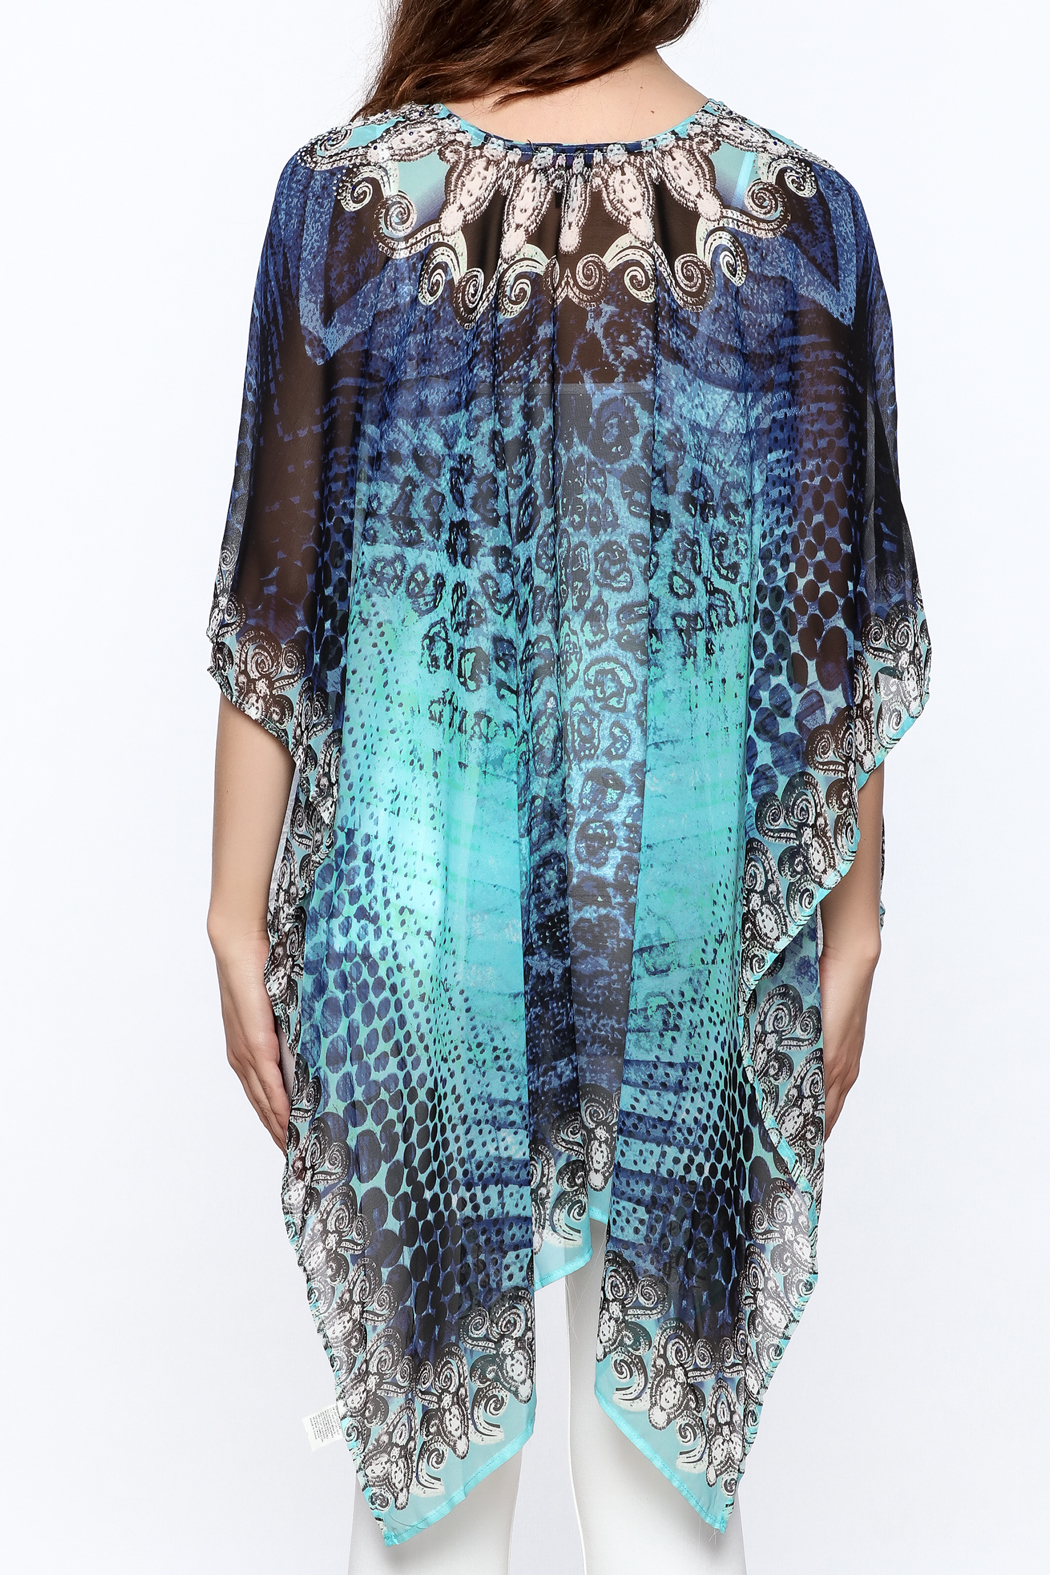 Pure Hype Blue Printed Kaftan Top - Back Cropped Image